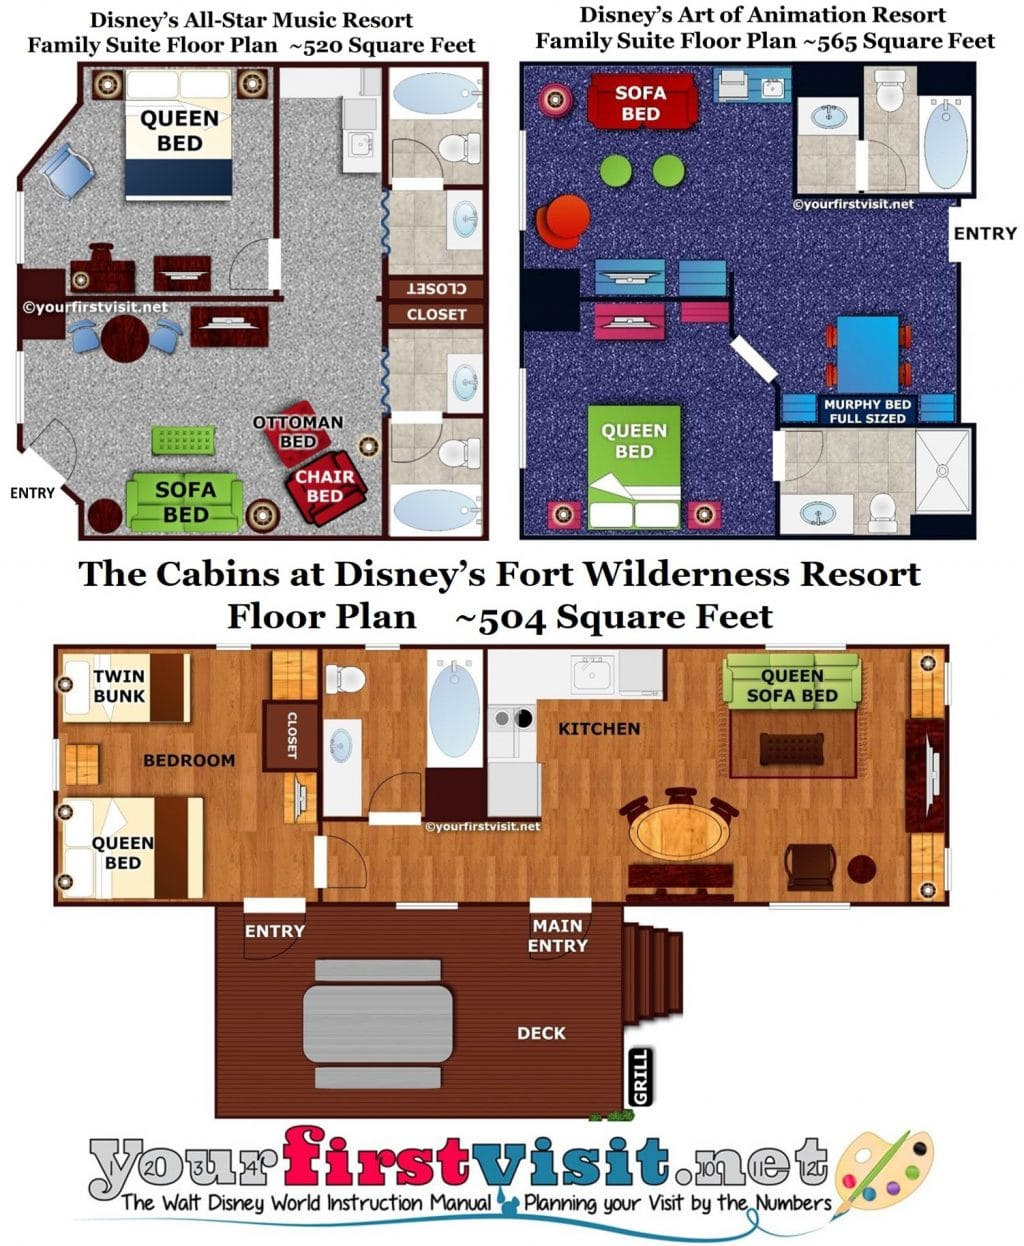 Review: The Family Suites at Disney's All-Star Music Resort